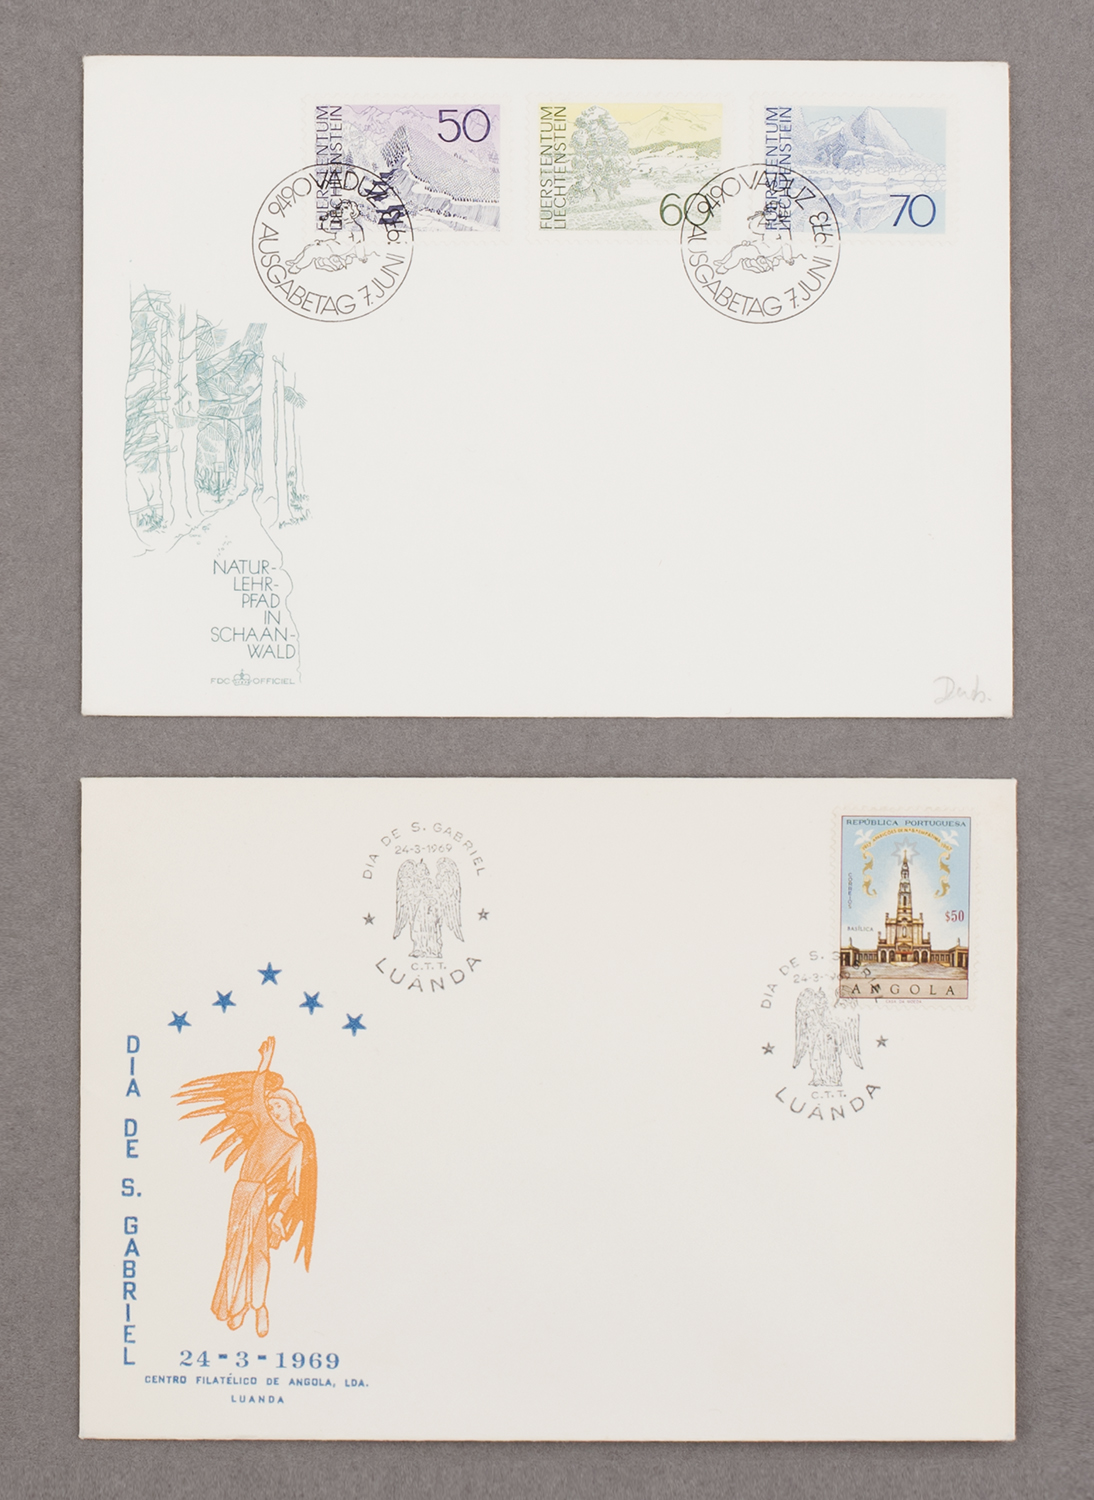 First day covers from Lichtenstein and Angola, 1973 & 1969, from Feira de Ladra, Lisbon